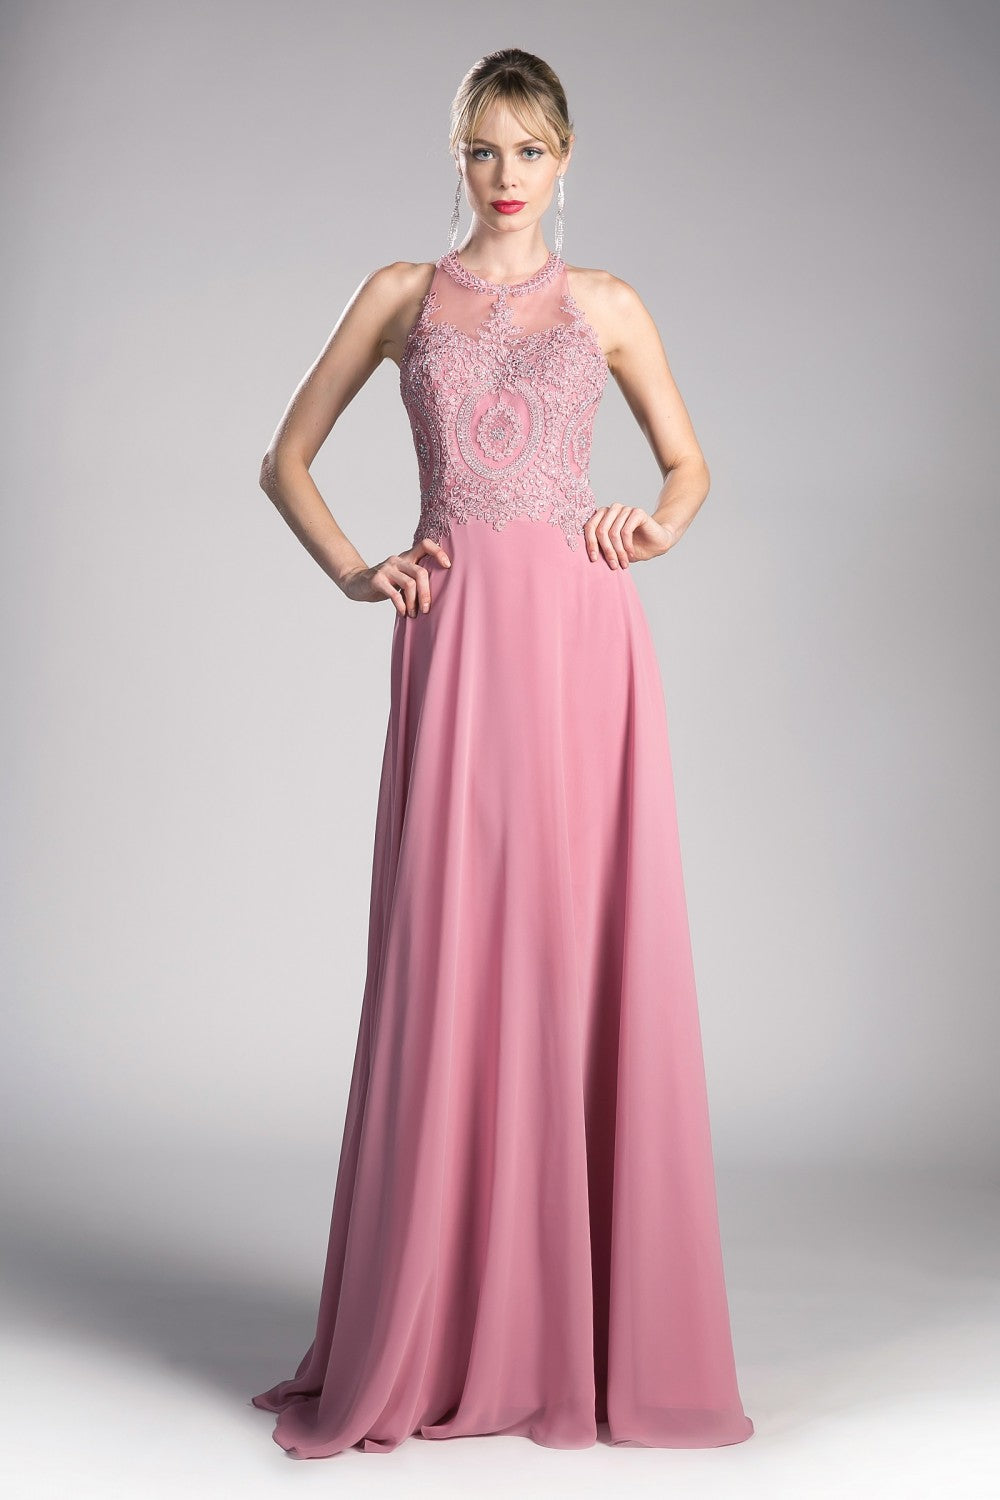 Bette Gown Halter Neckline with Beaded Lace C120NX-Rose SAMPLE IN STORE